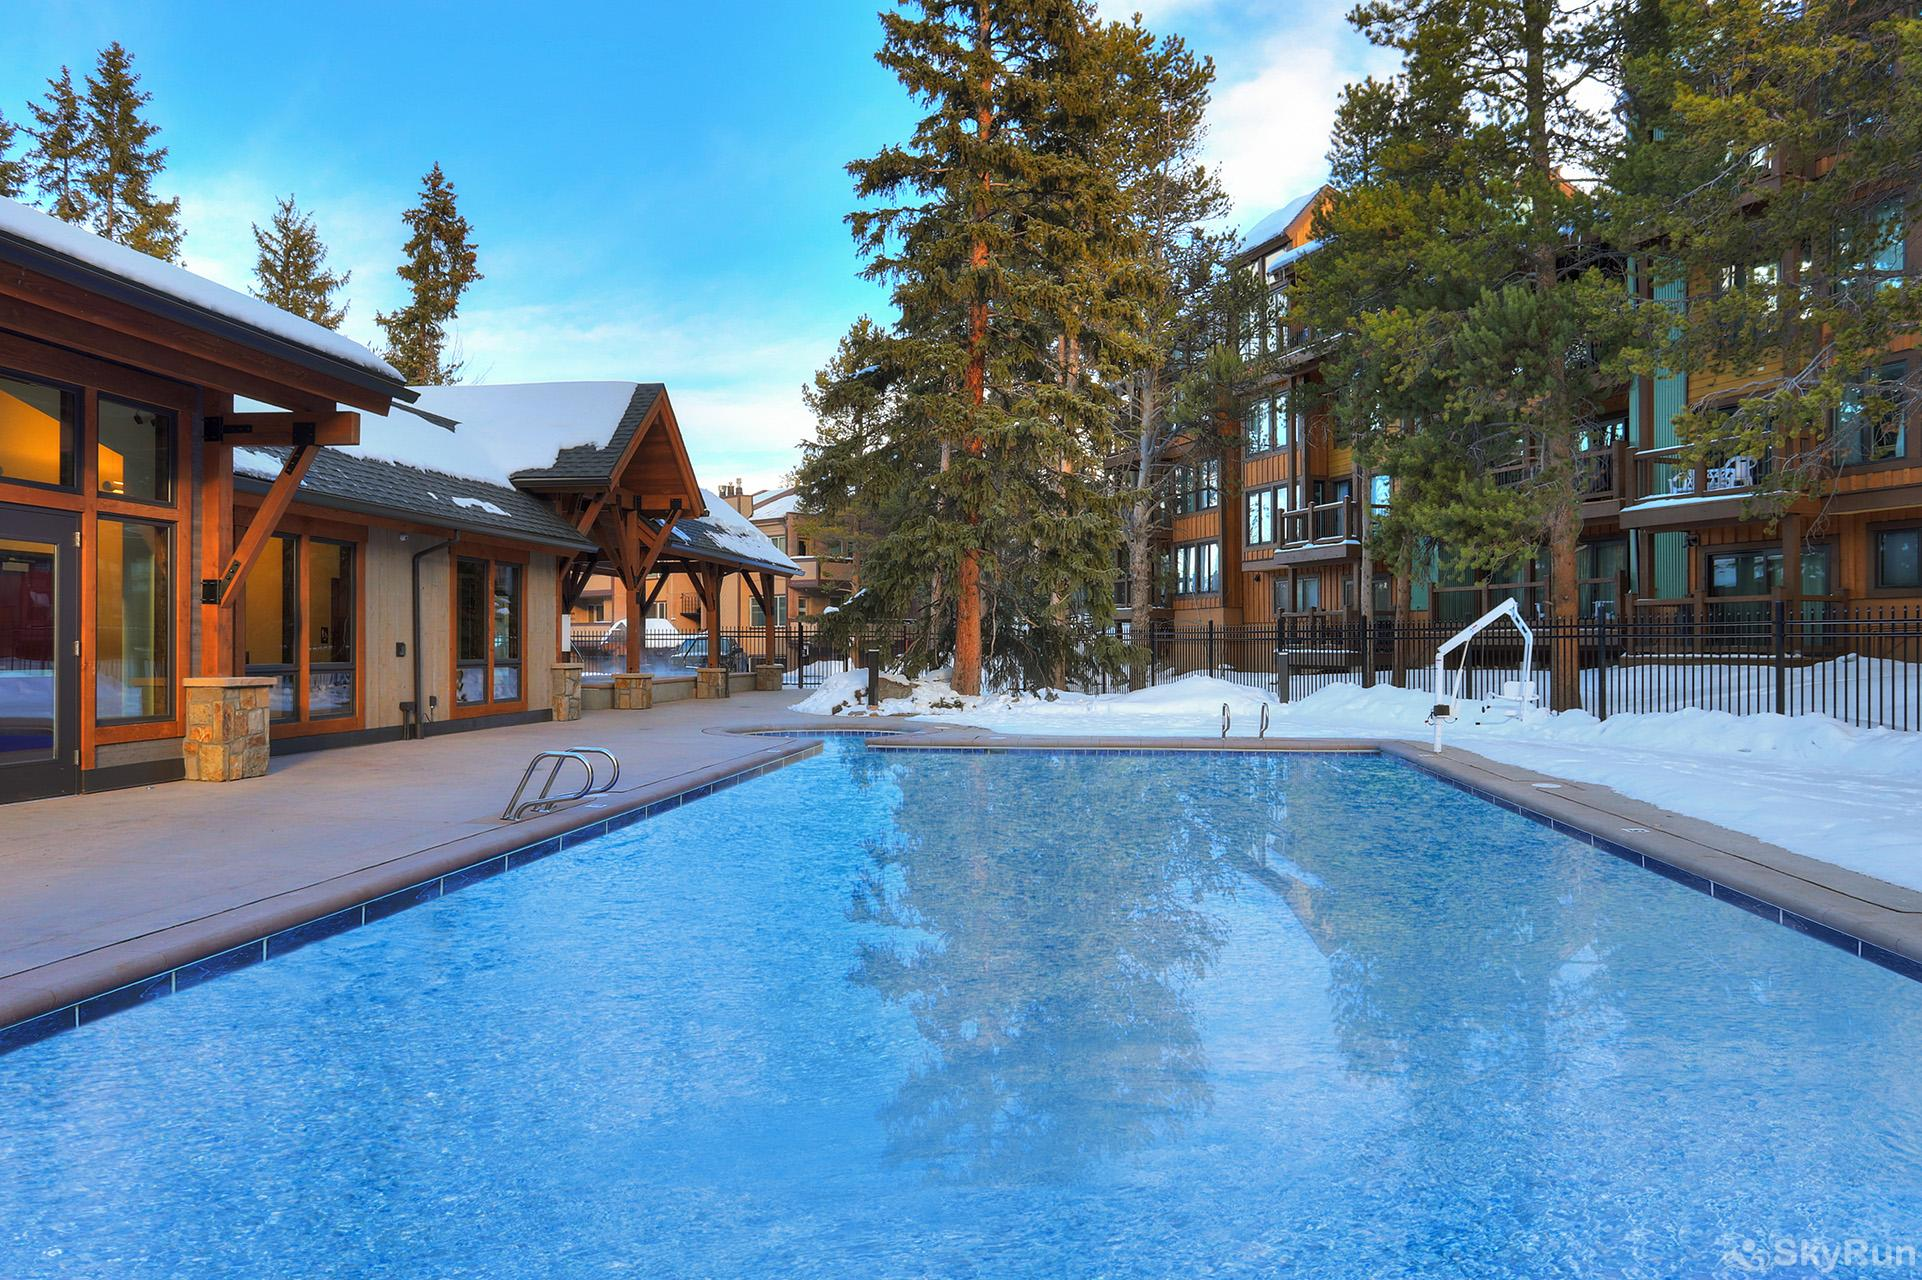 The Lift C11 Columbine Pool Complex outdoor heated pool